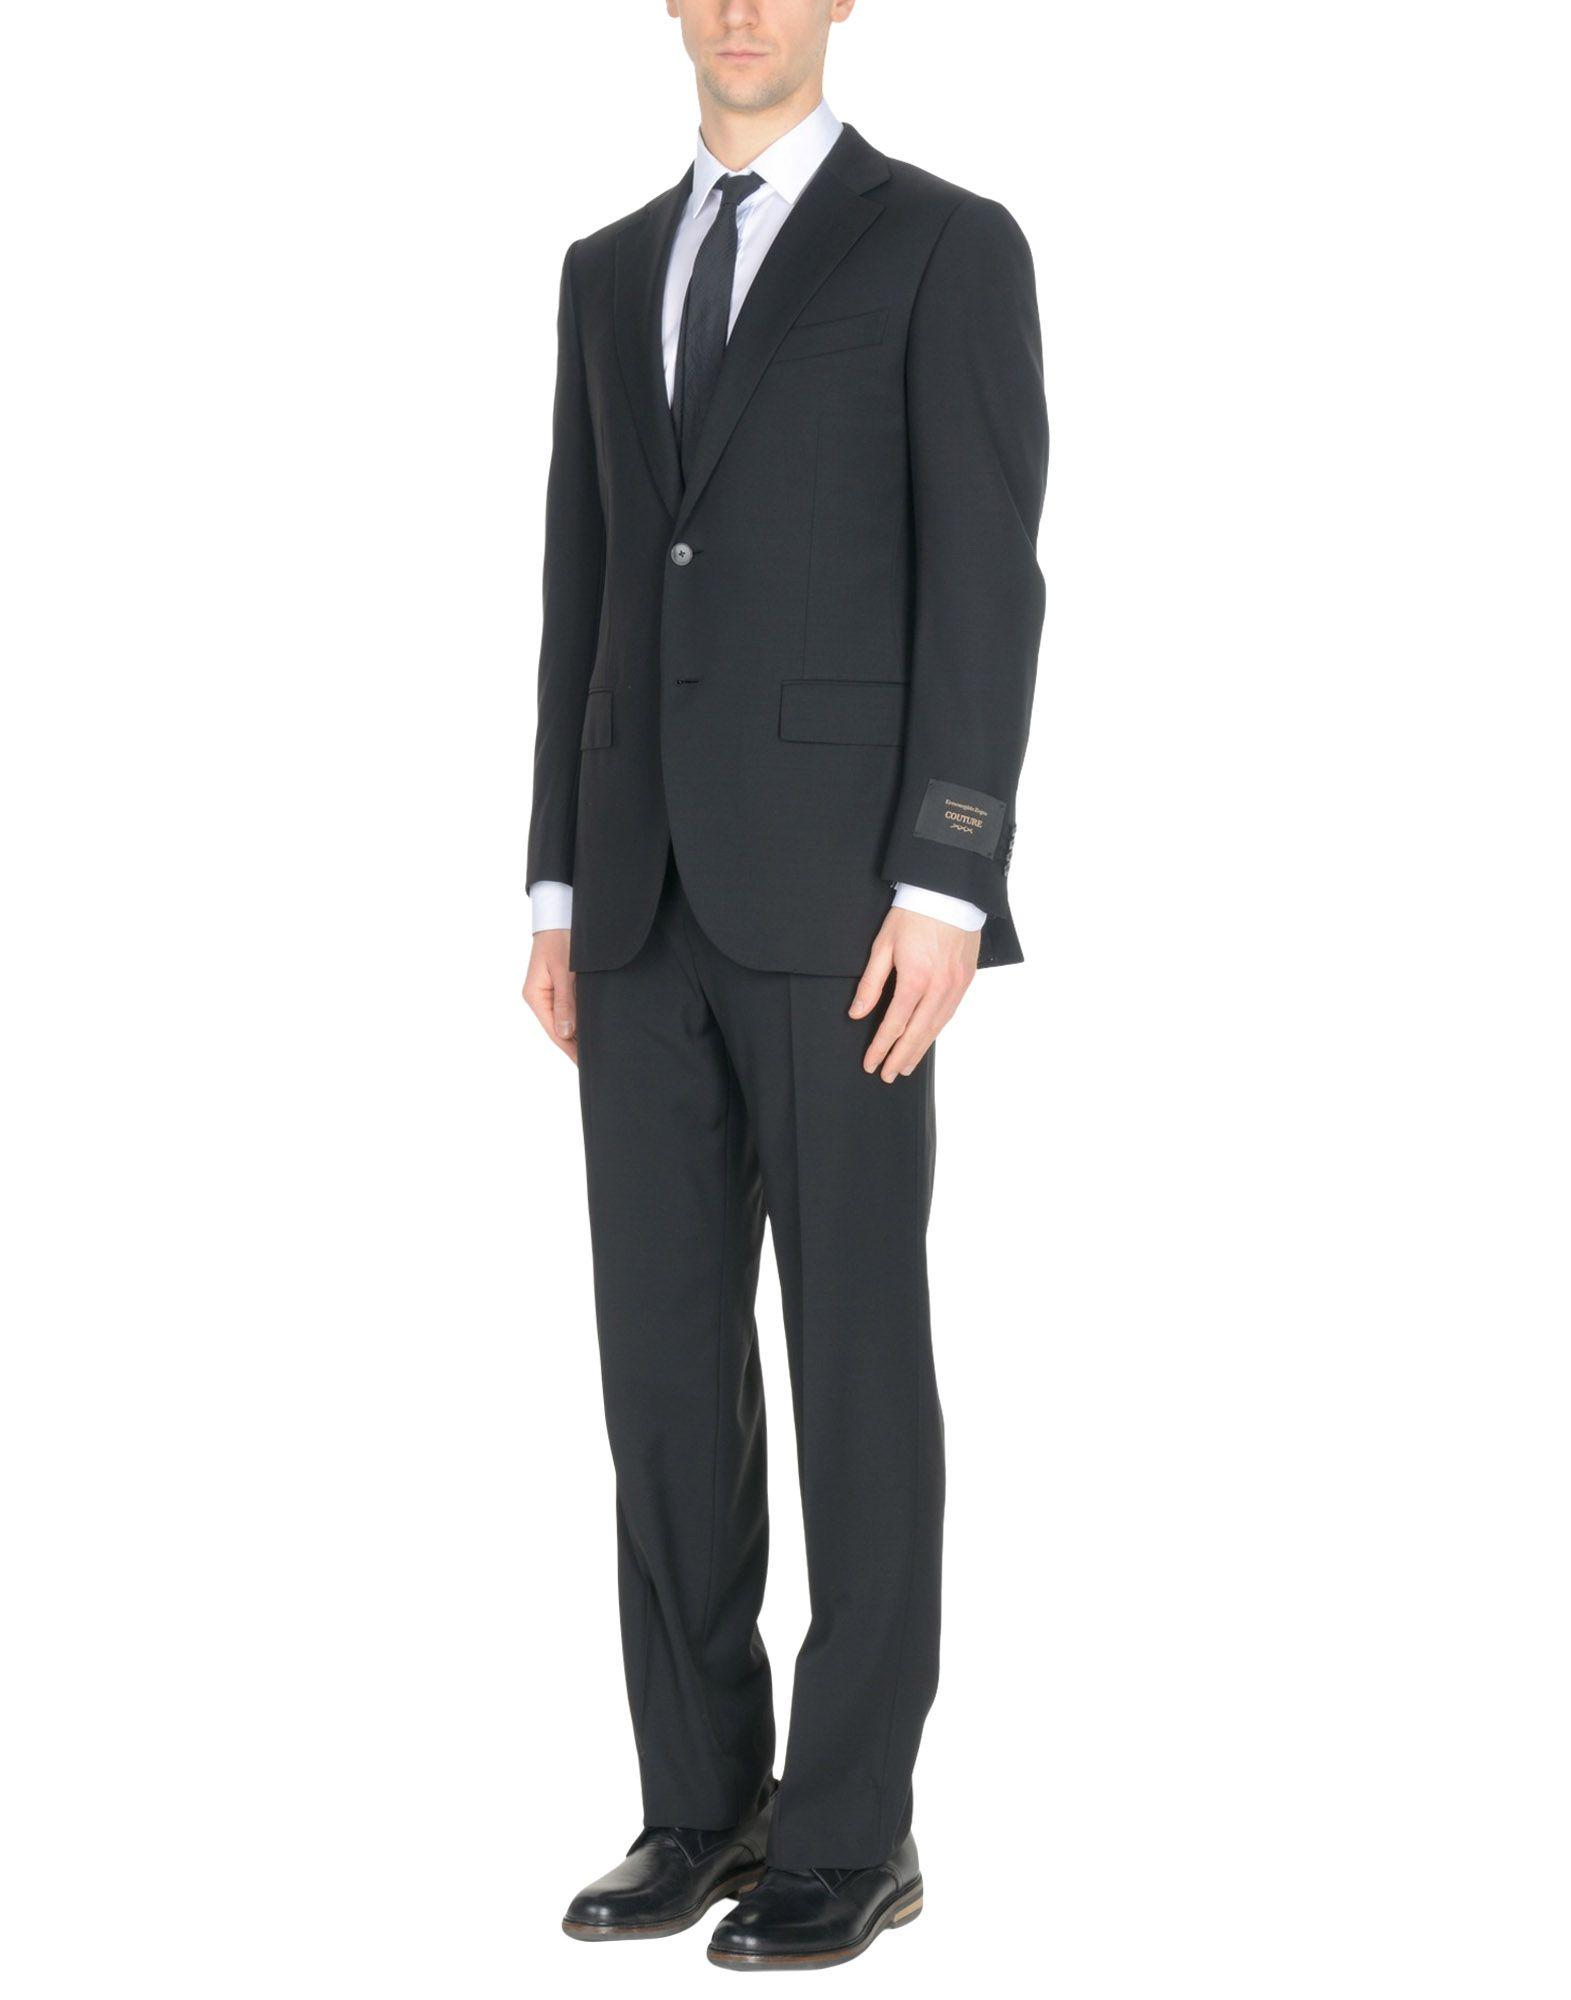 Ermenegildo Zegna Suits In Black